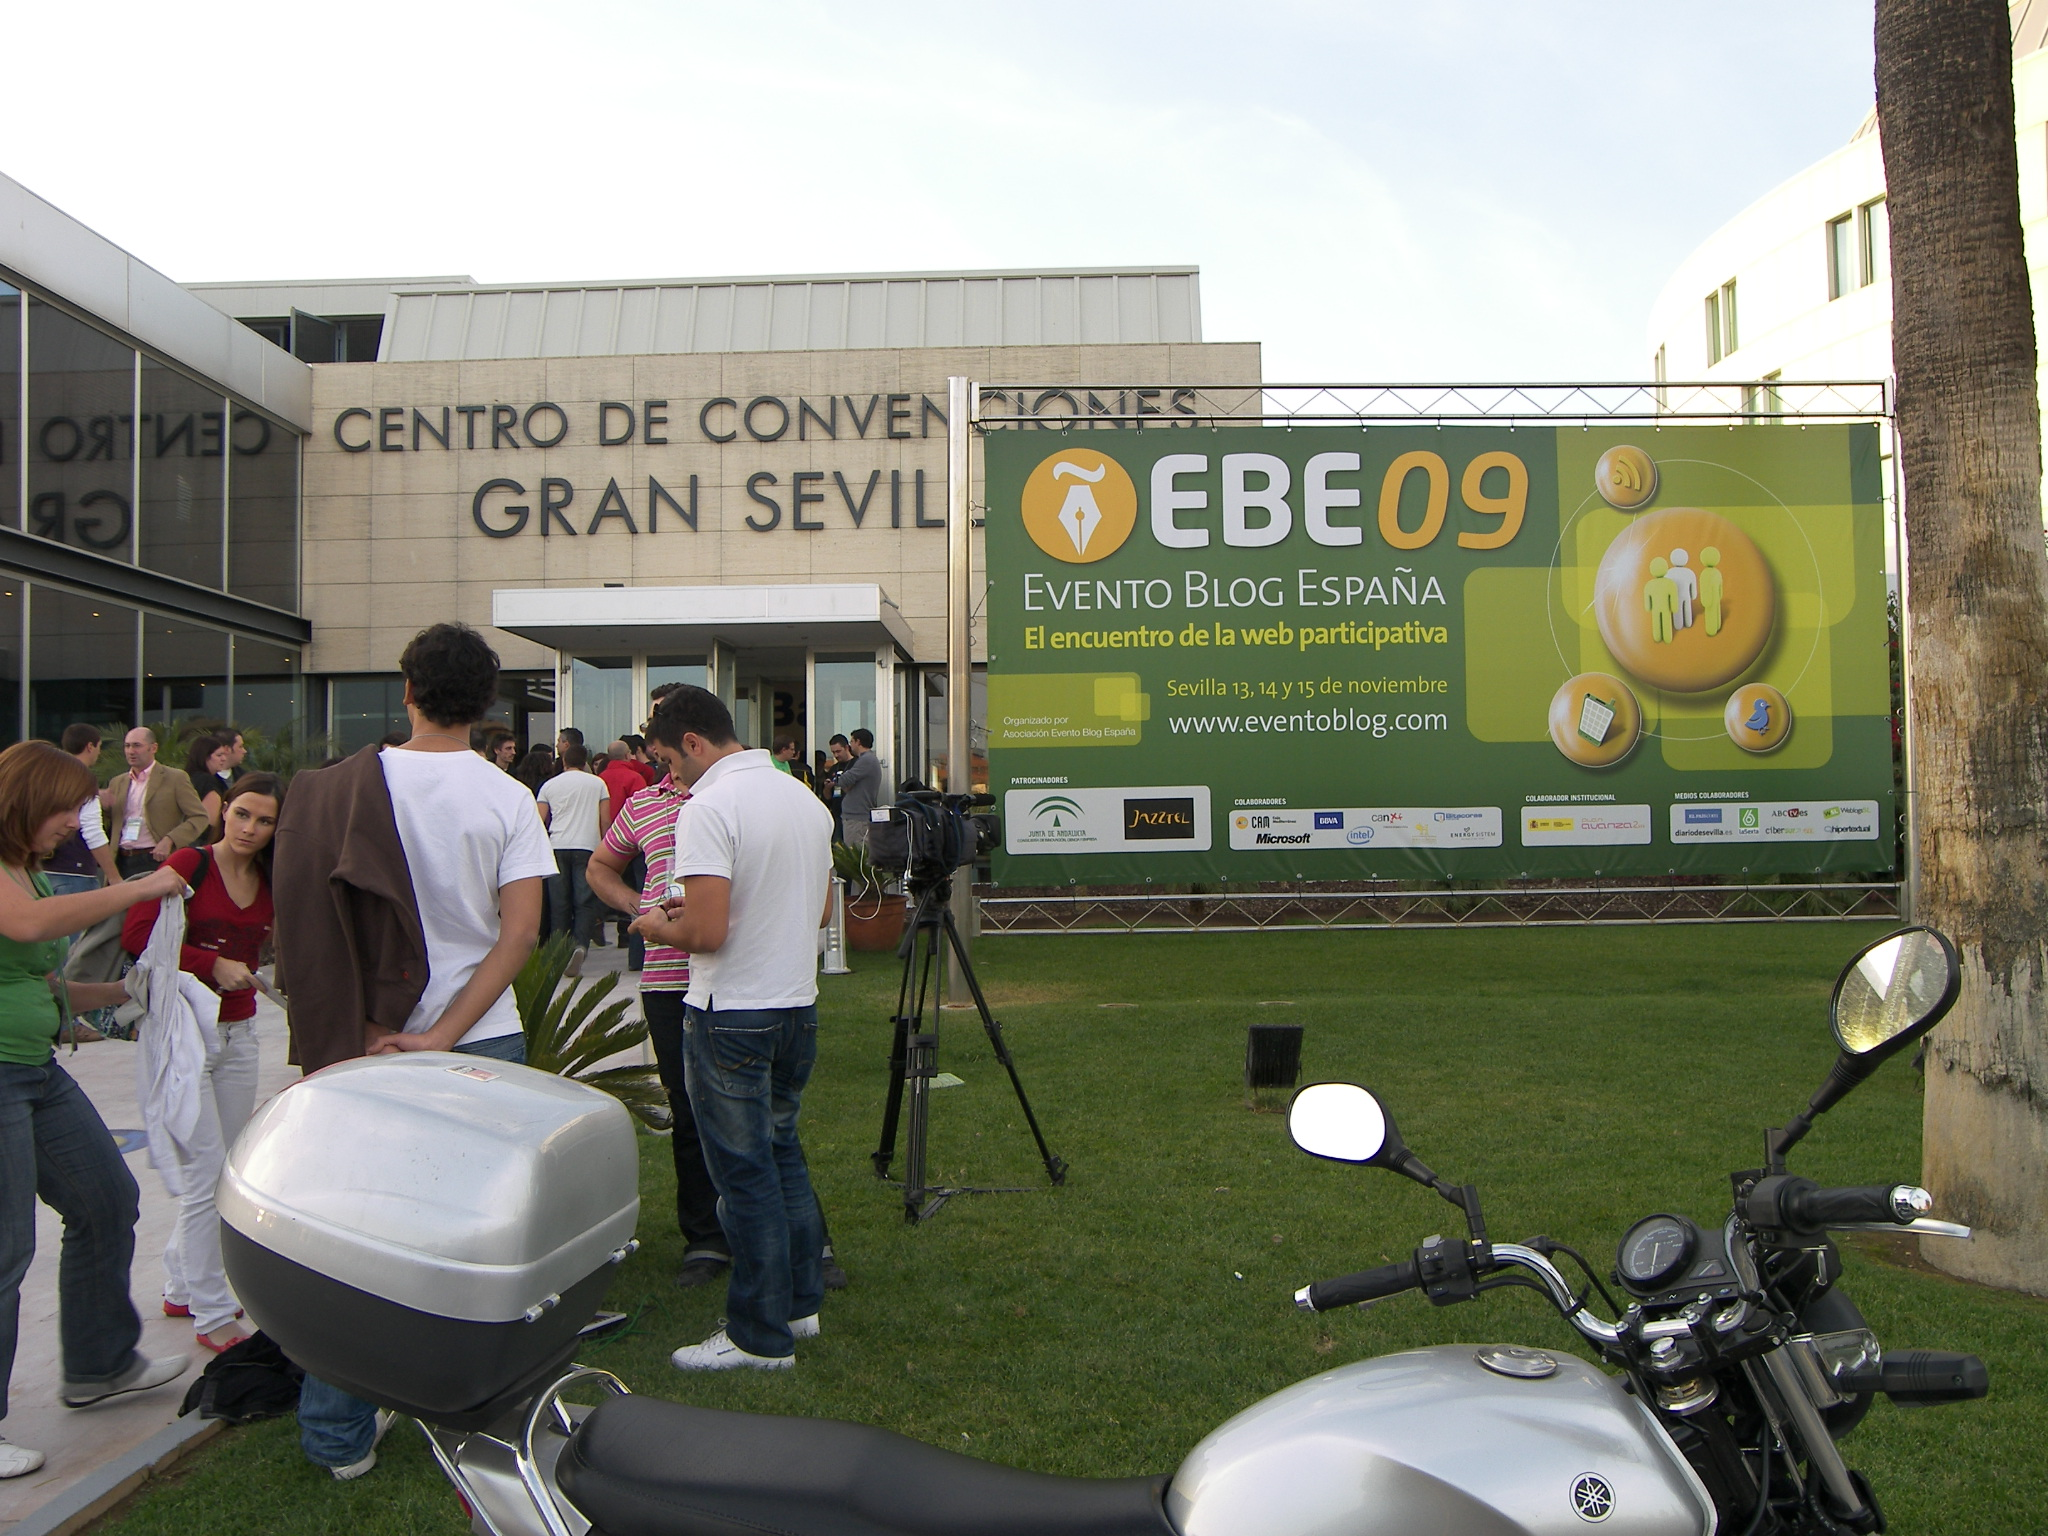 EBE09